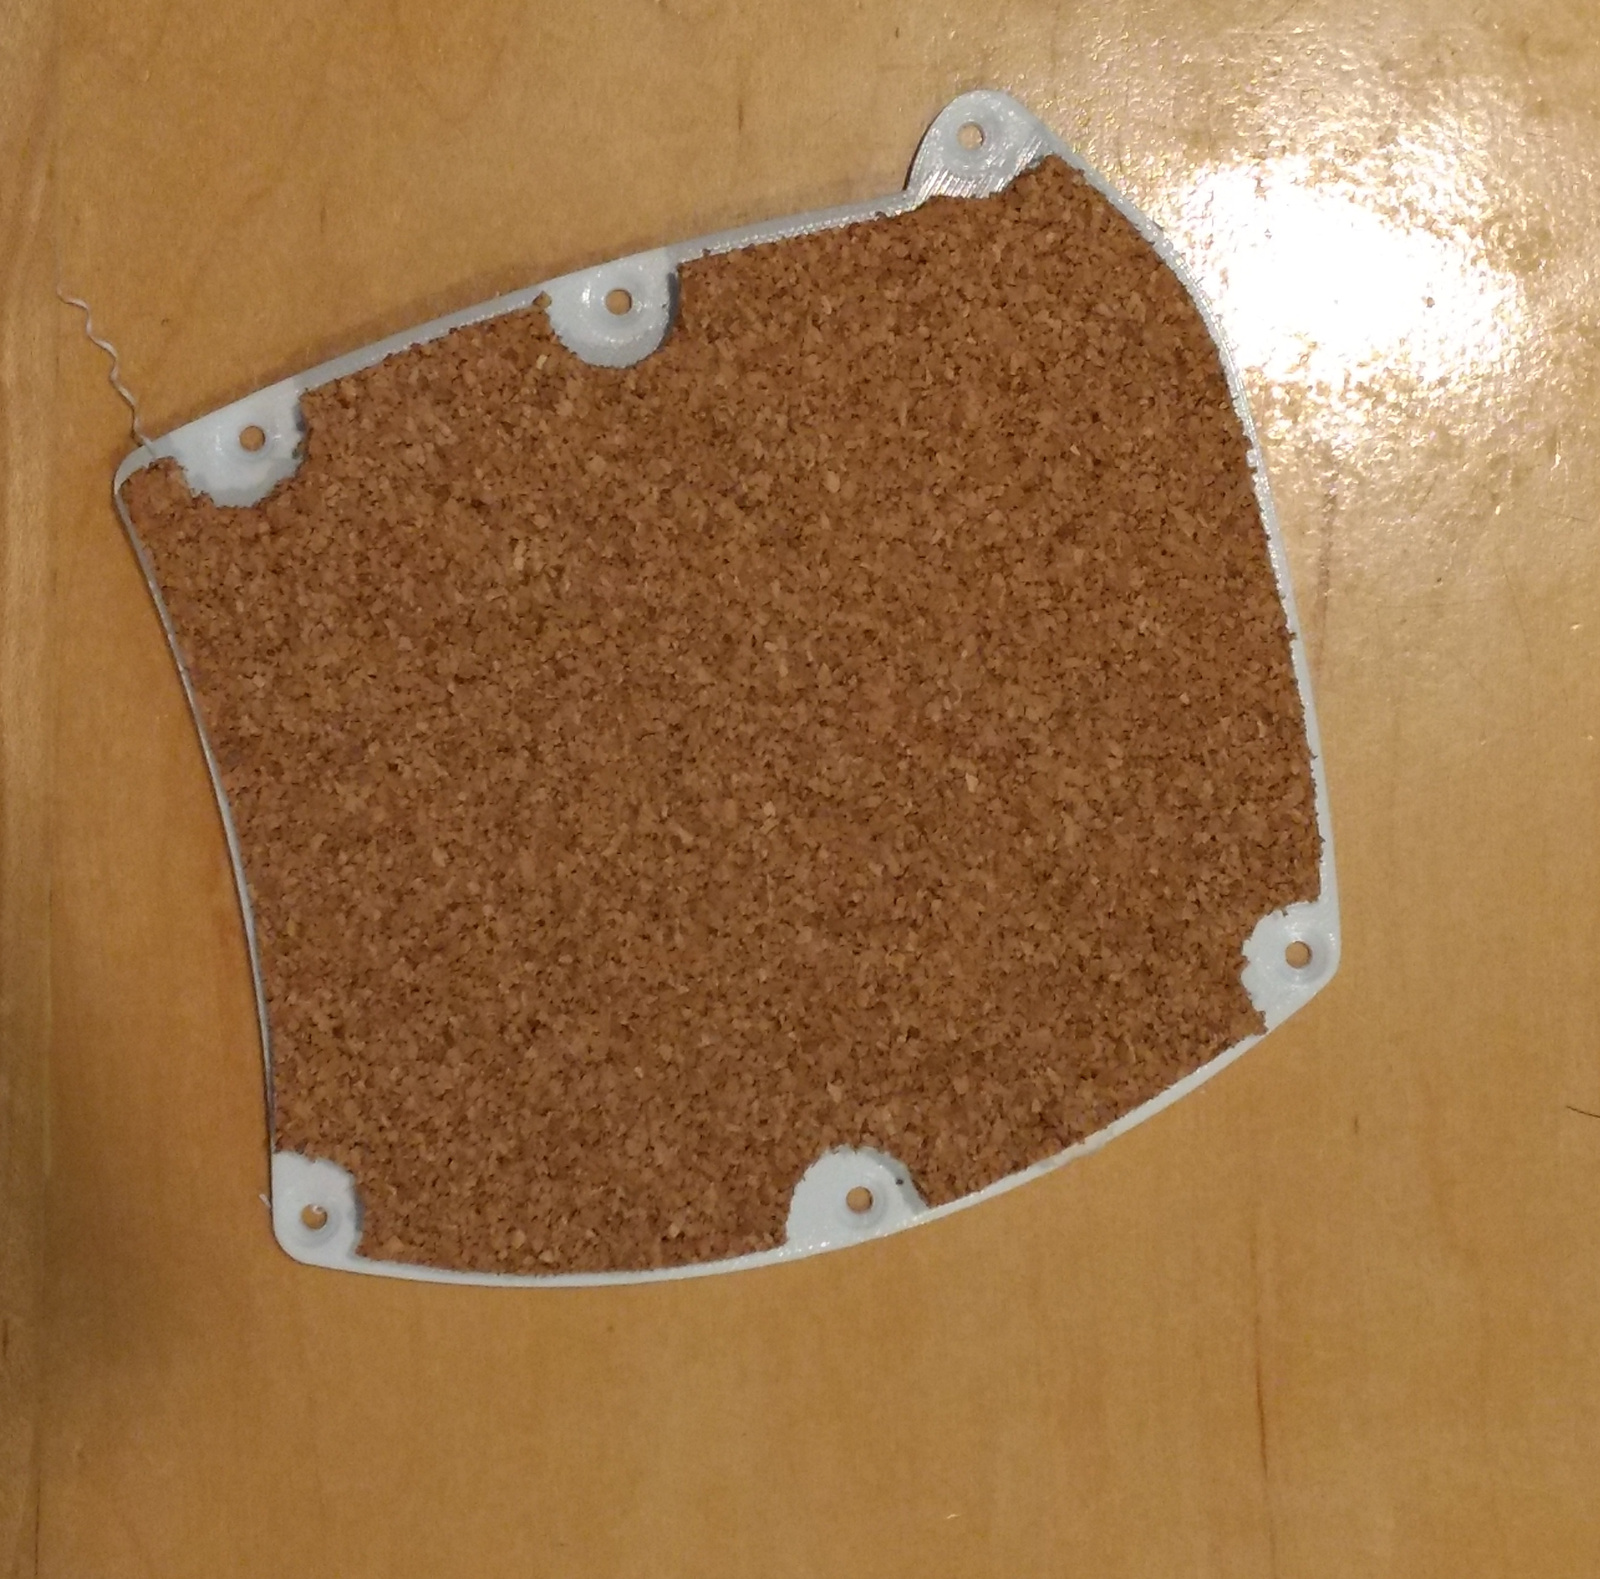 Lid/cover with non-slip cork attached